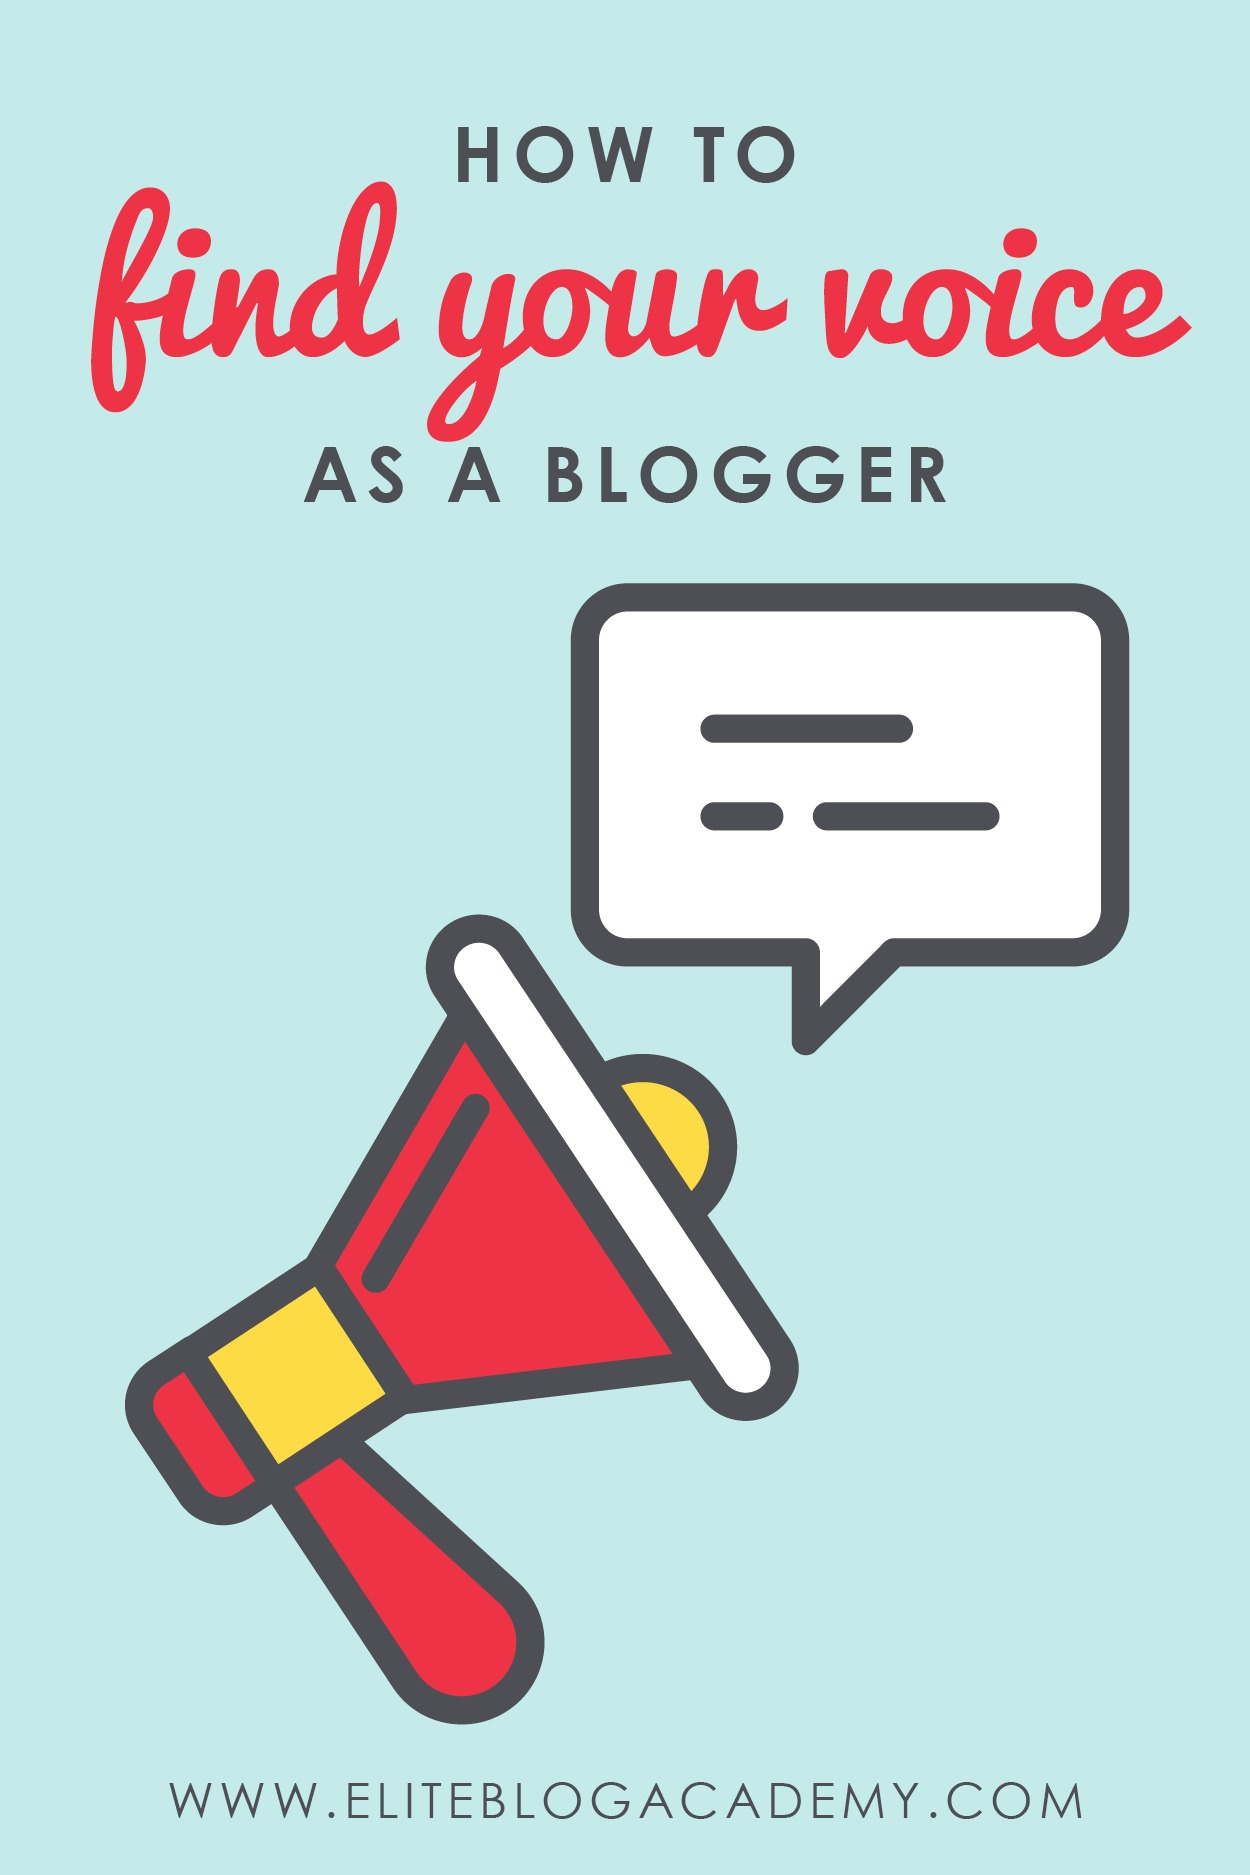 How can you find your voice as a blogger? When you embrace who you are, put your style to use, and write about what fires you up, blogging magic happens!